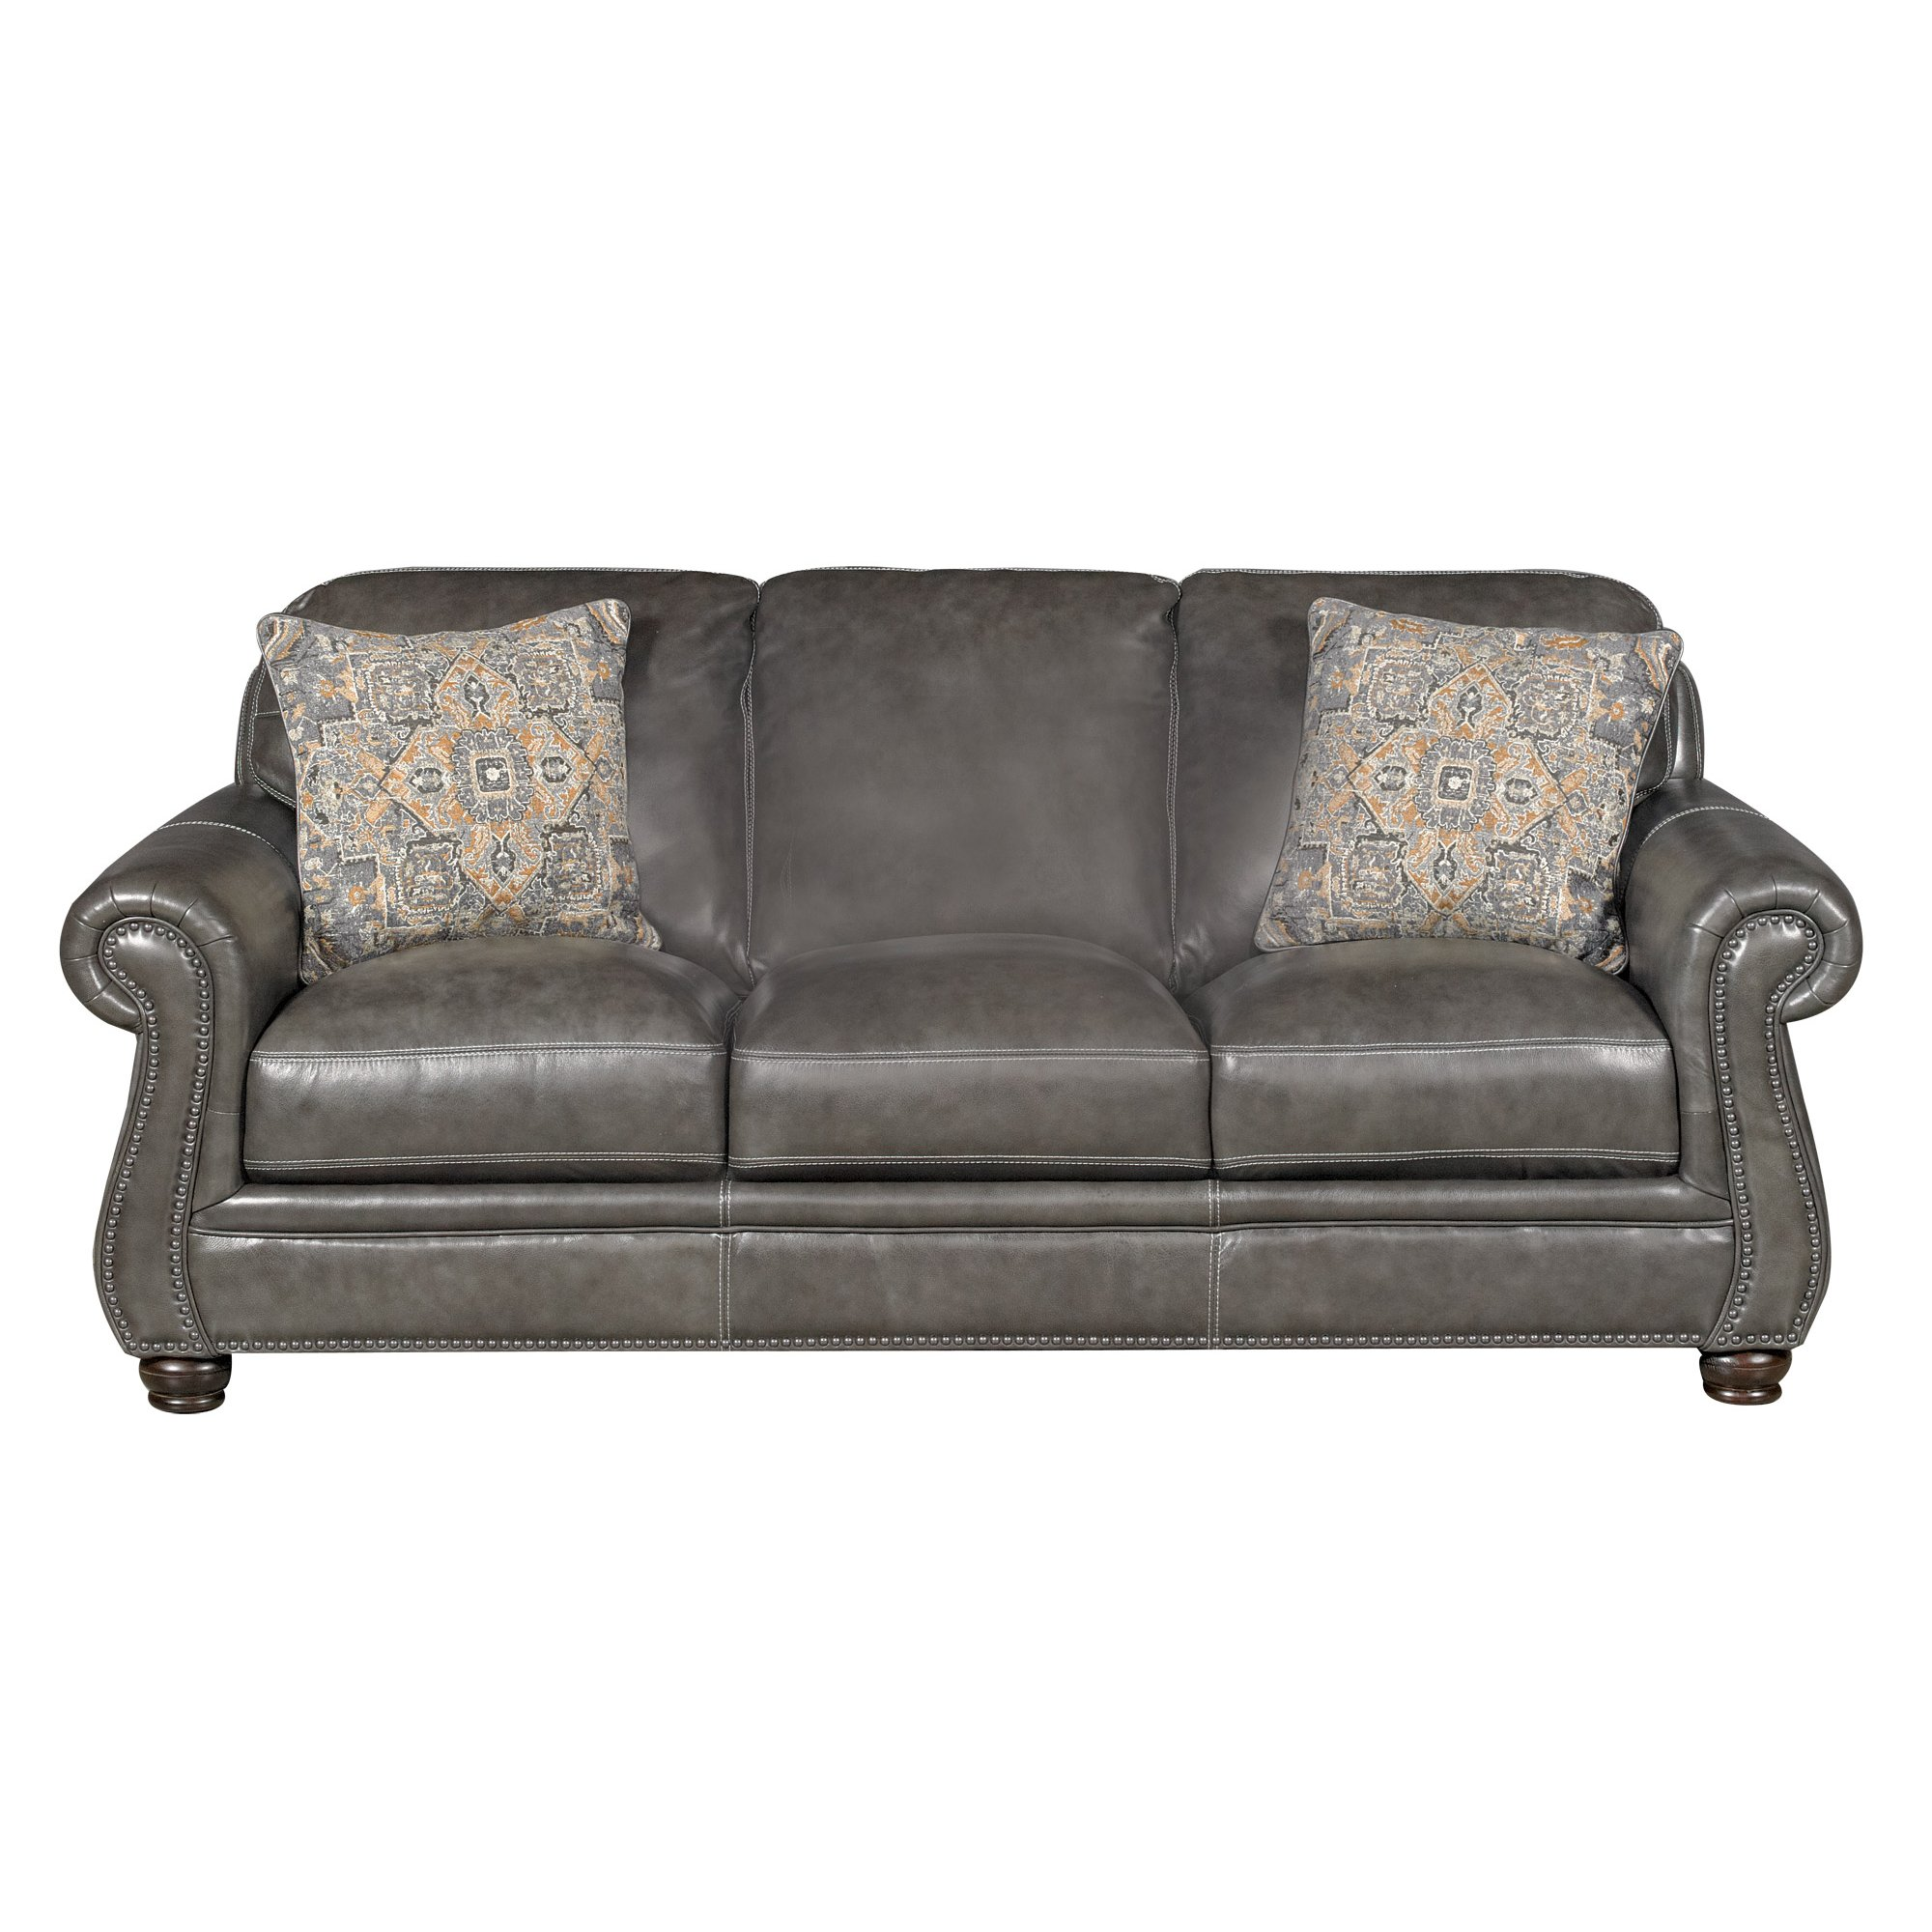 Leather sofas for living room for Traditional leather sofas furniture